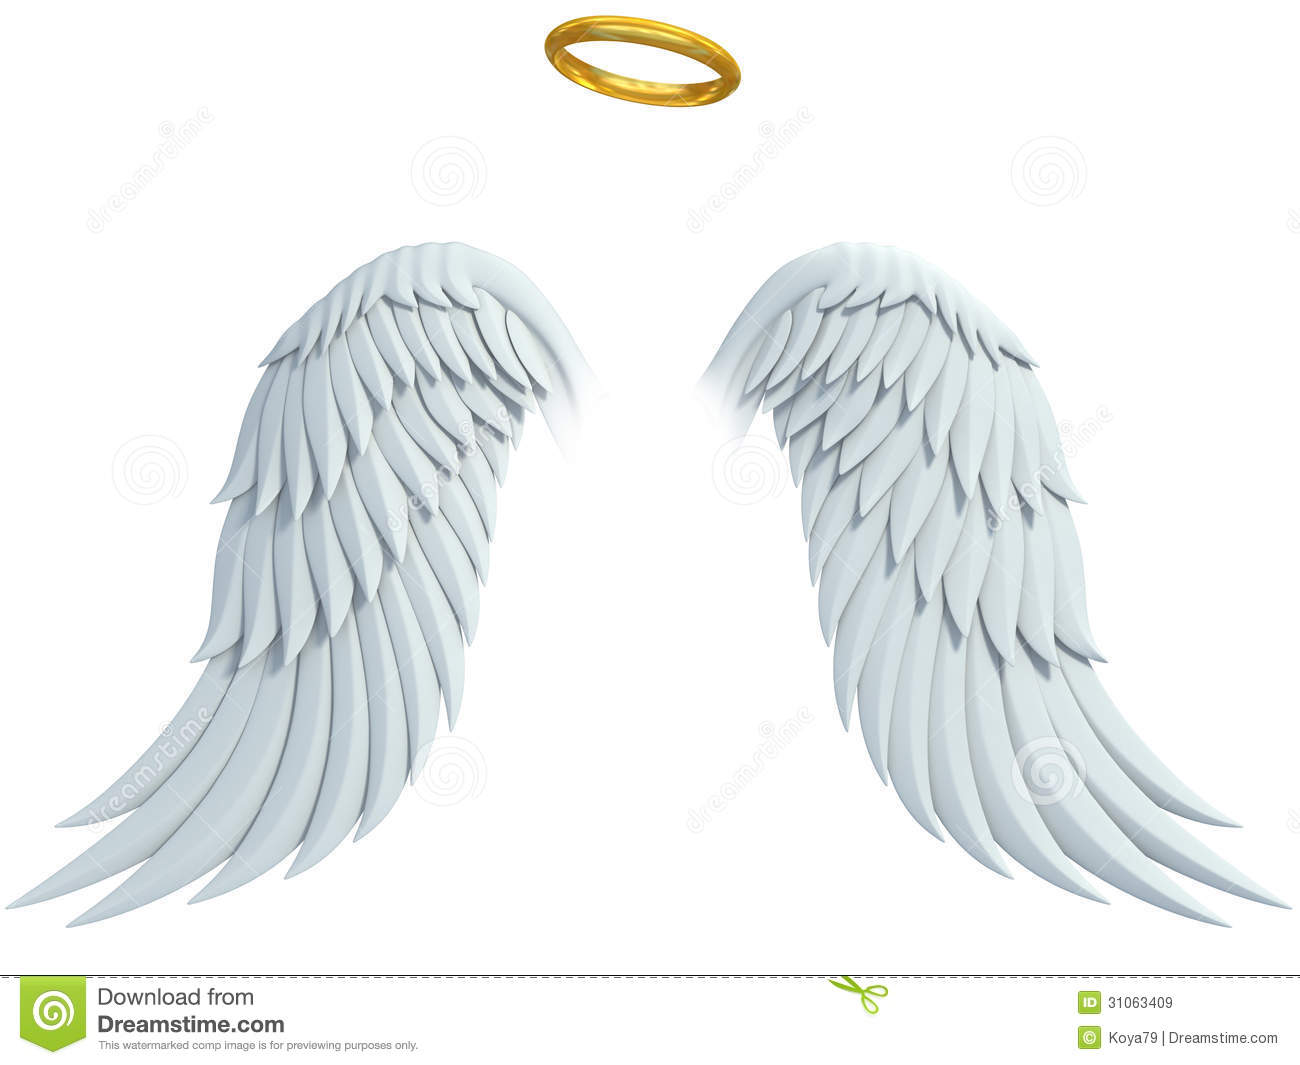 Angel design elements - wings and golden halo isolated on the white ...